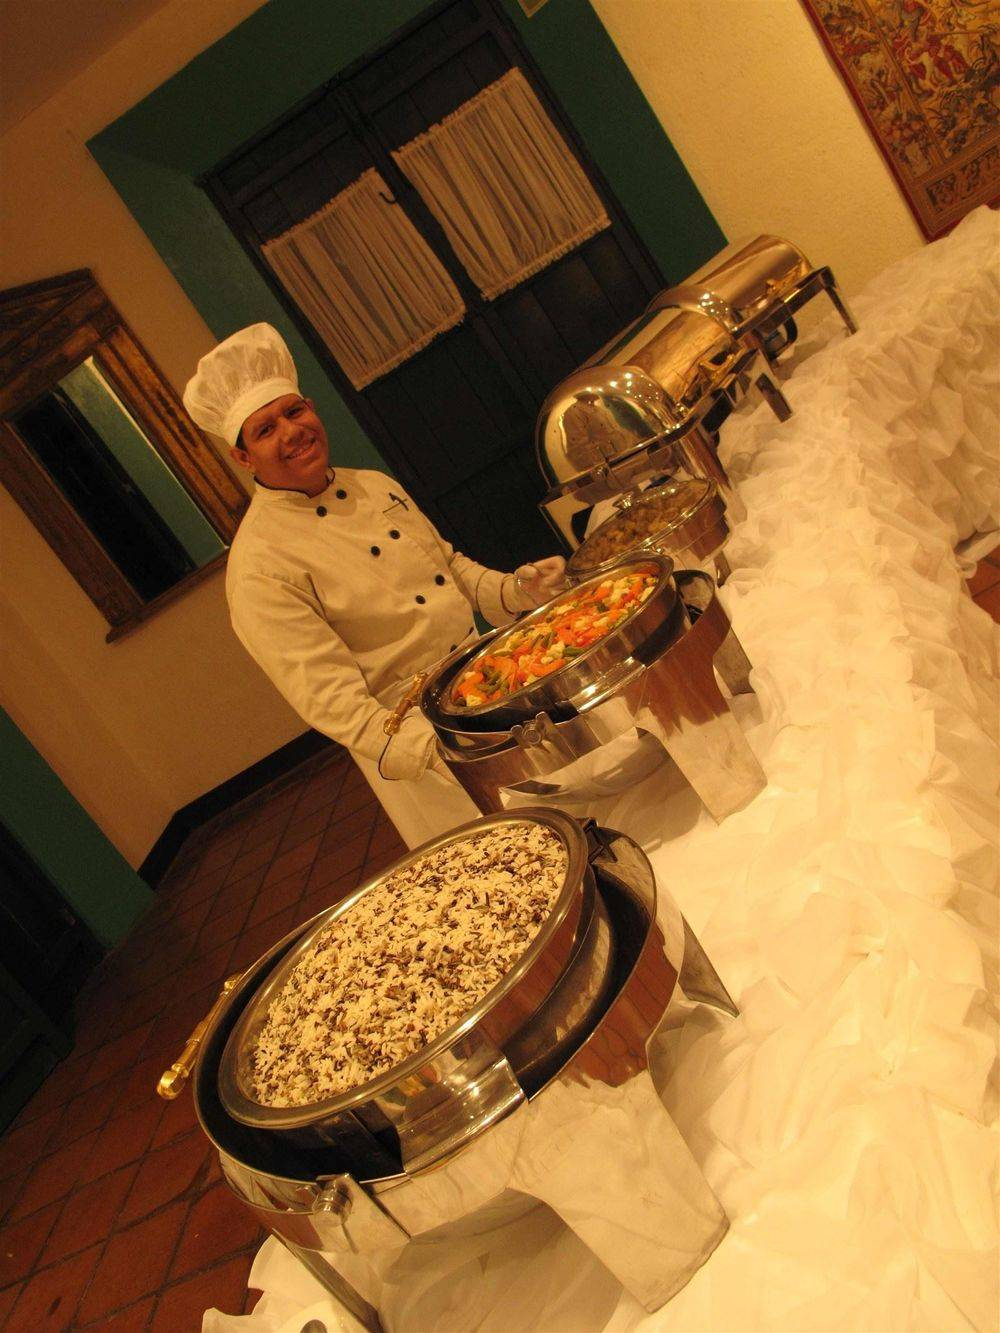 Catering Options for Weddings in Nicaragua - Picture property of www.WeddingsNicaragua.com